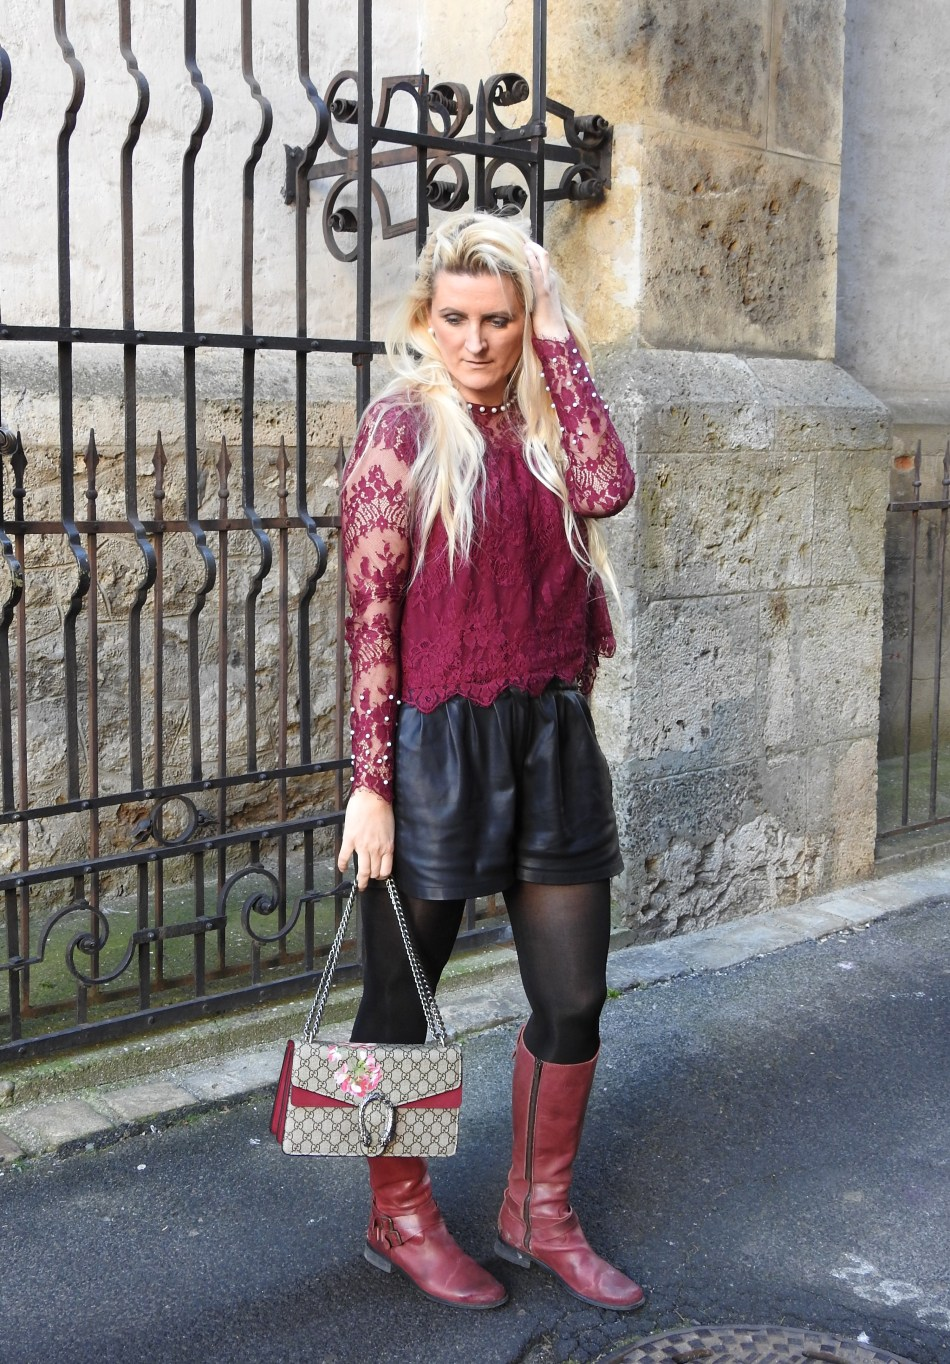 Winered-Weinrot-Gucci-Bag-Boots-Leathershorts-Pearls-Spitzentop-Lacetop-carrieslifestyle-Tamara-Prutsch